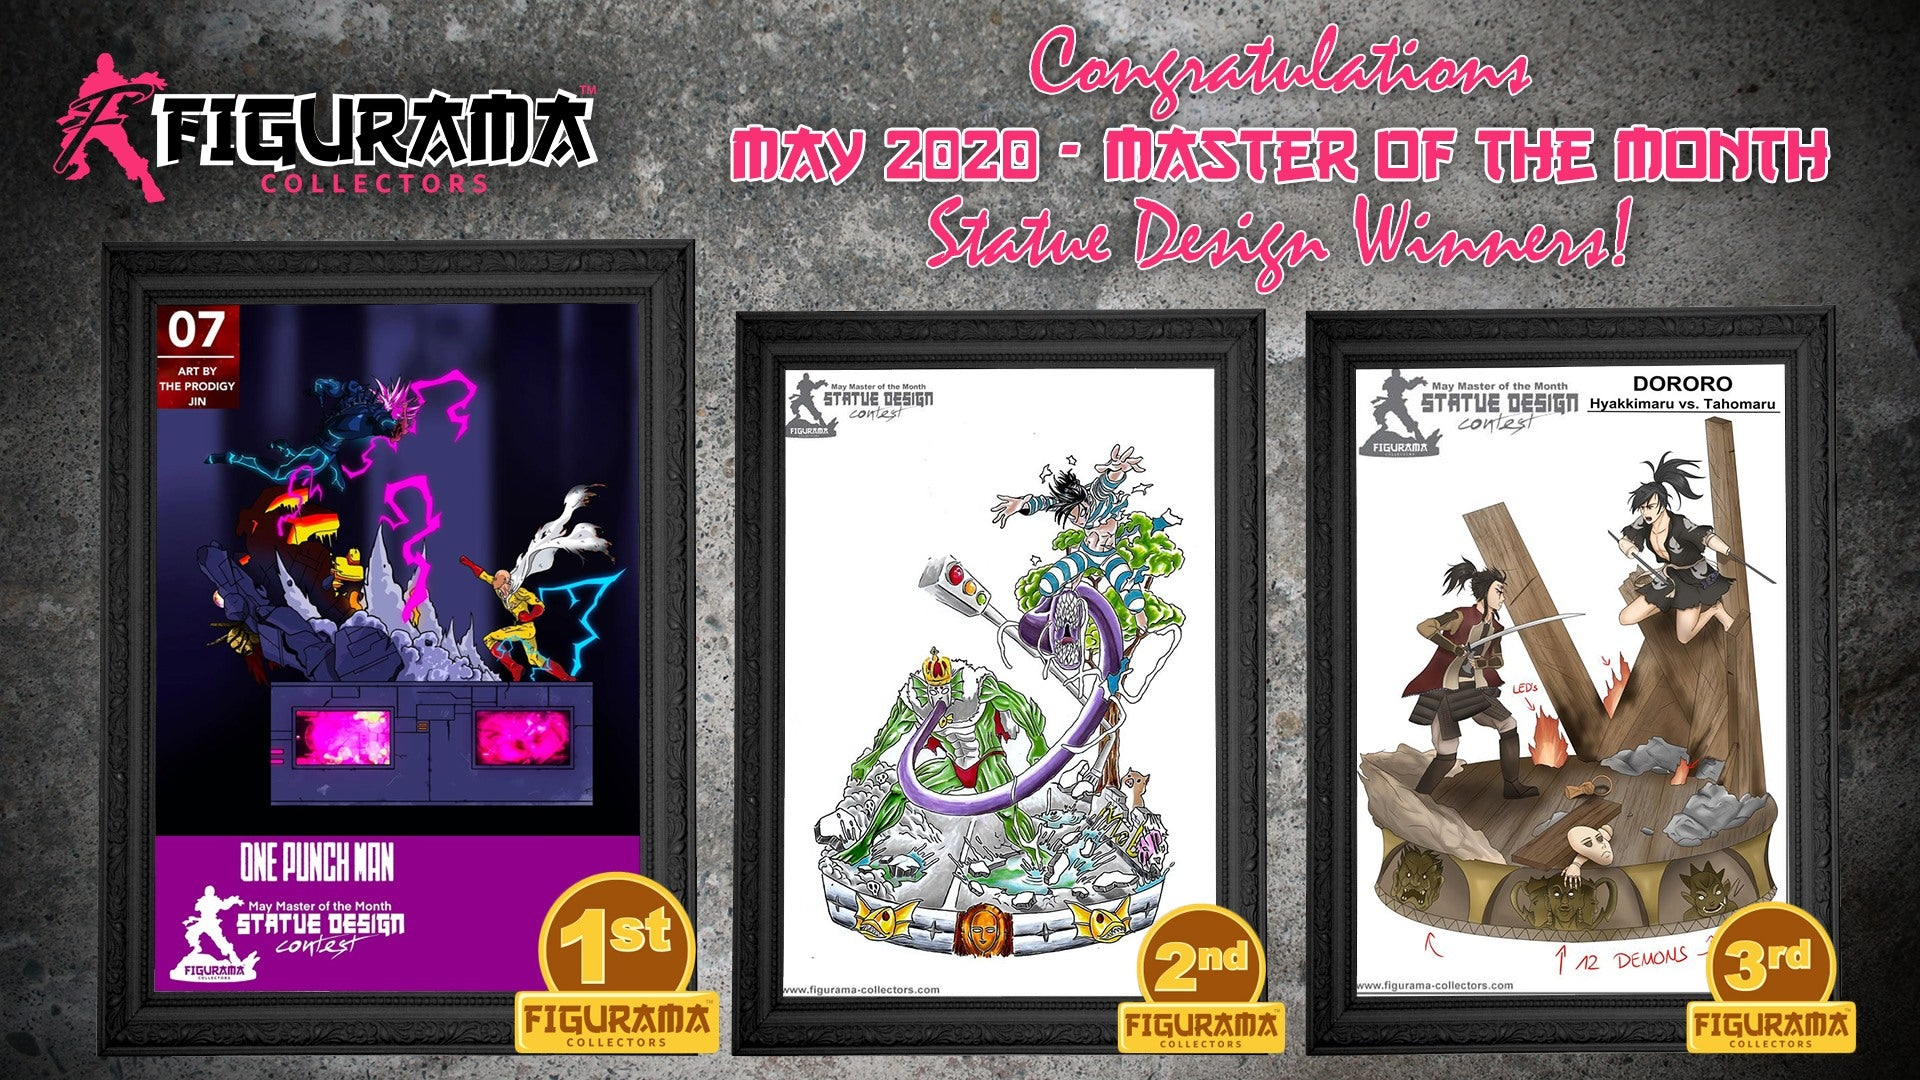 Statue Design Contest Winners Announced!